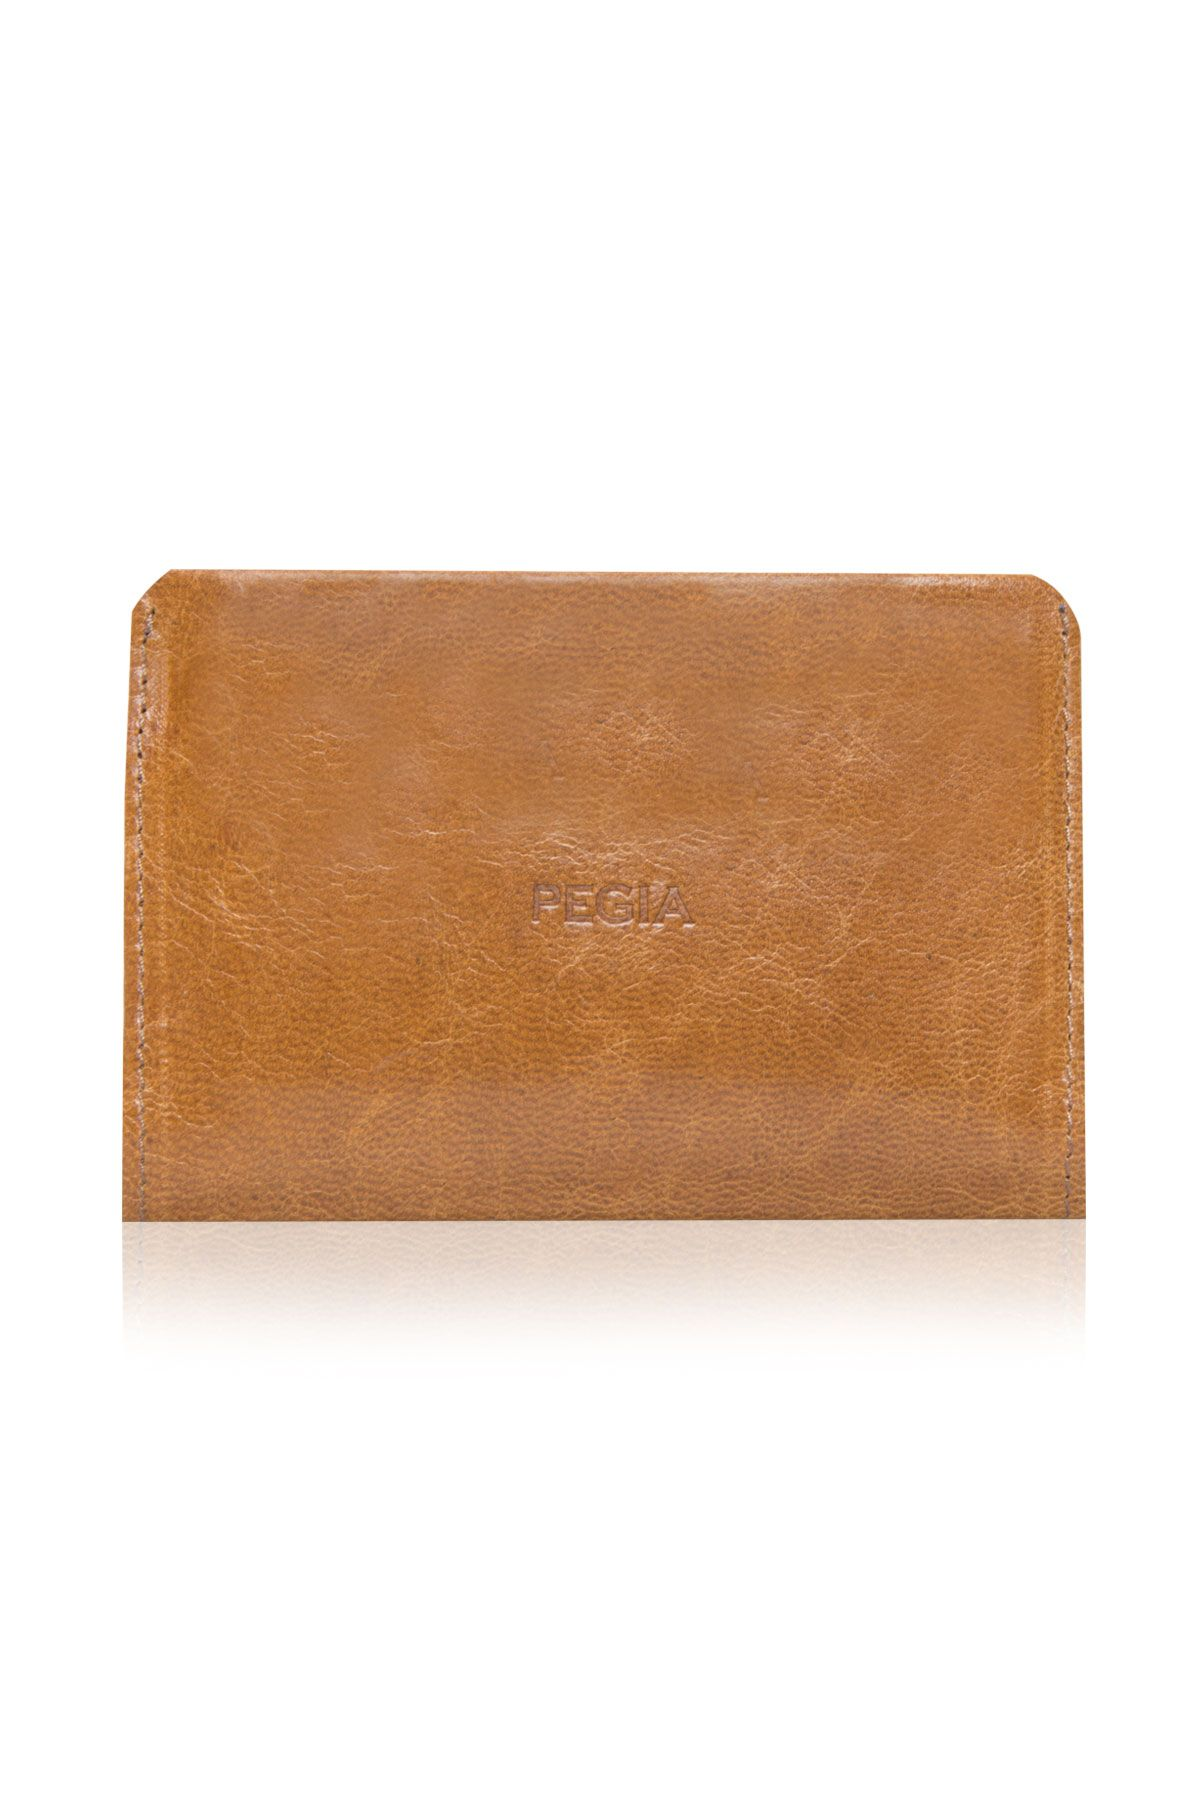 Pegia Genuine Leather Vintage Wallet  19CZ304 Ginger